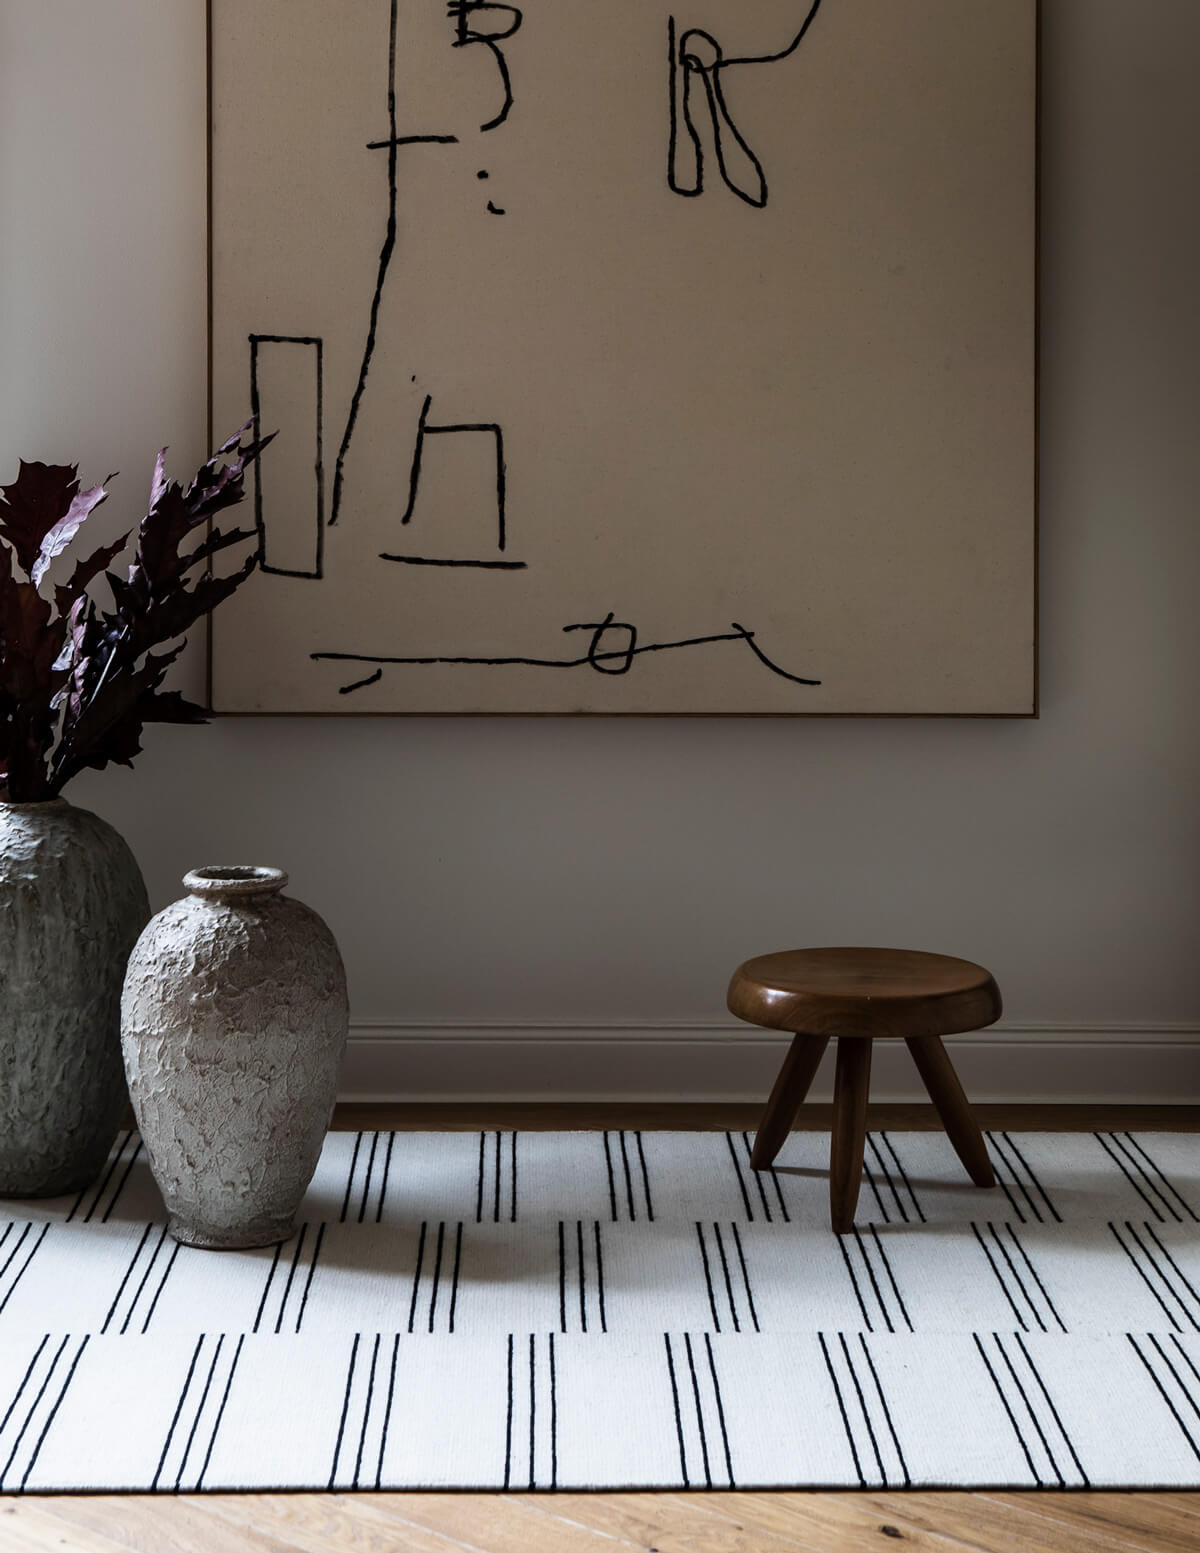 Flatweave rug Stripes in color Cream and Black styled with a small wooden stool and two large urns.